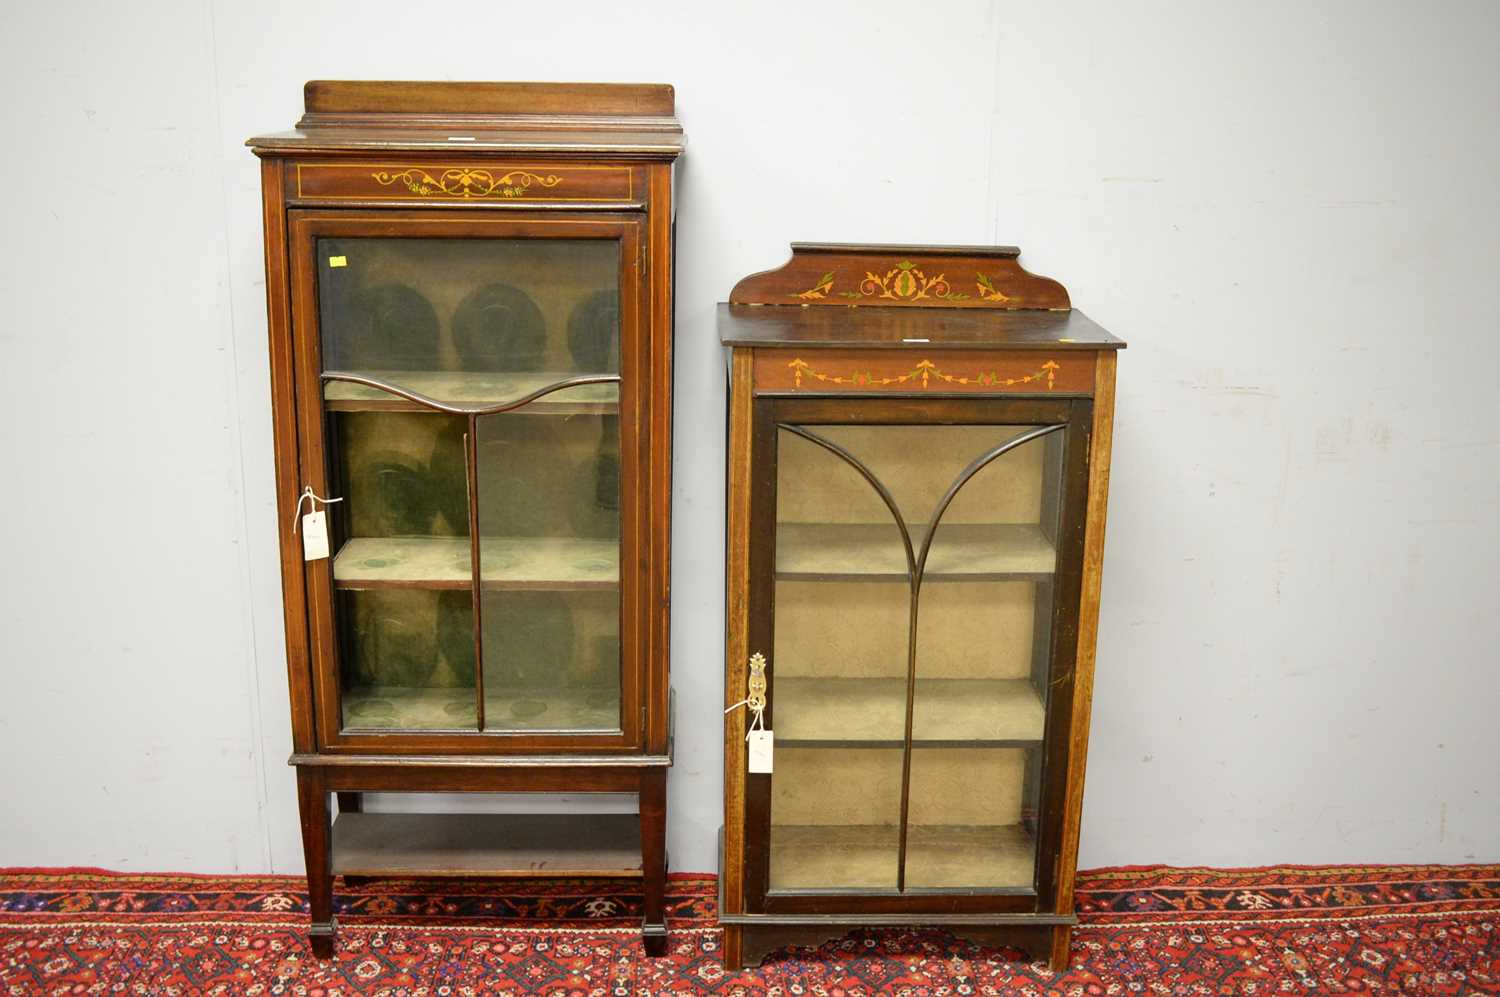 Two early 20th C display cabinets.